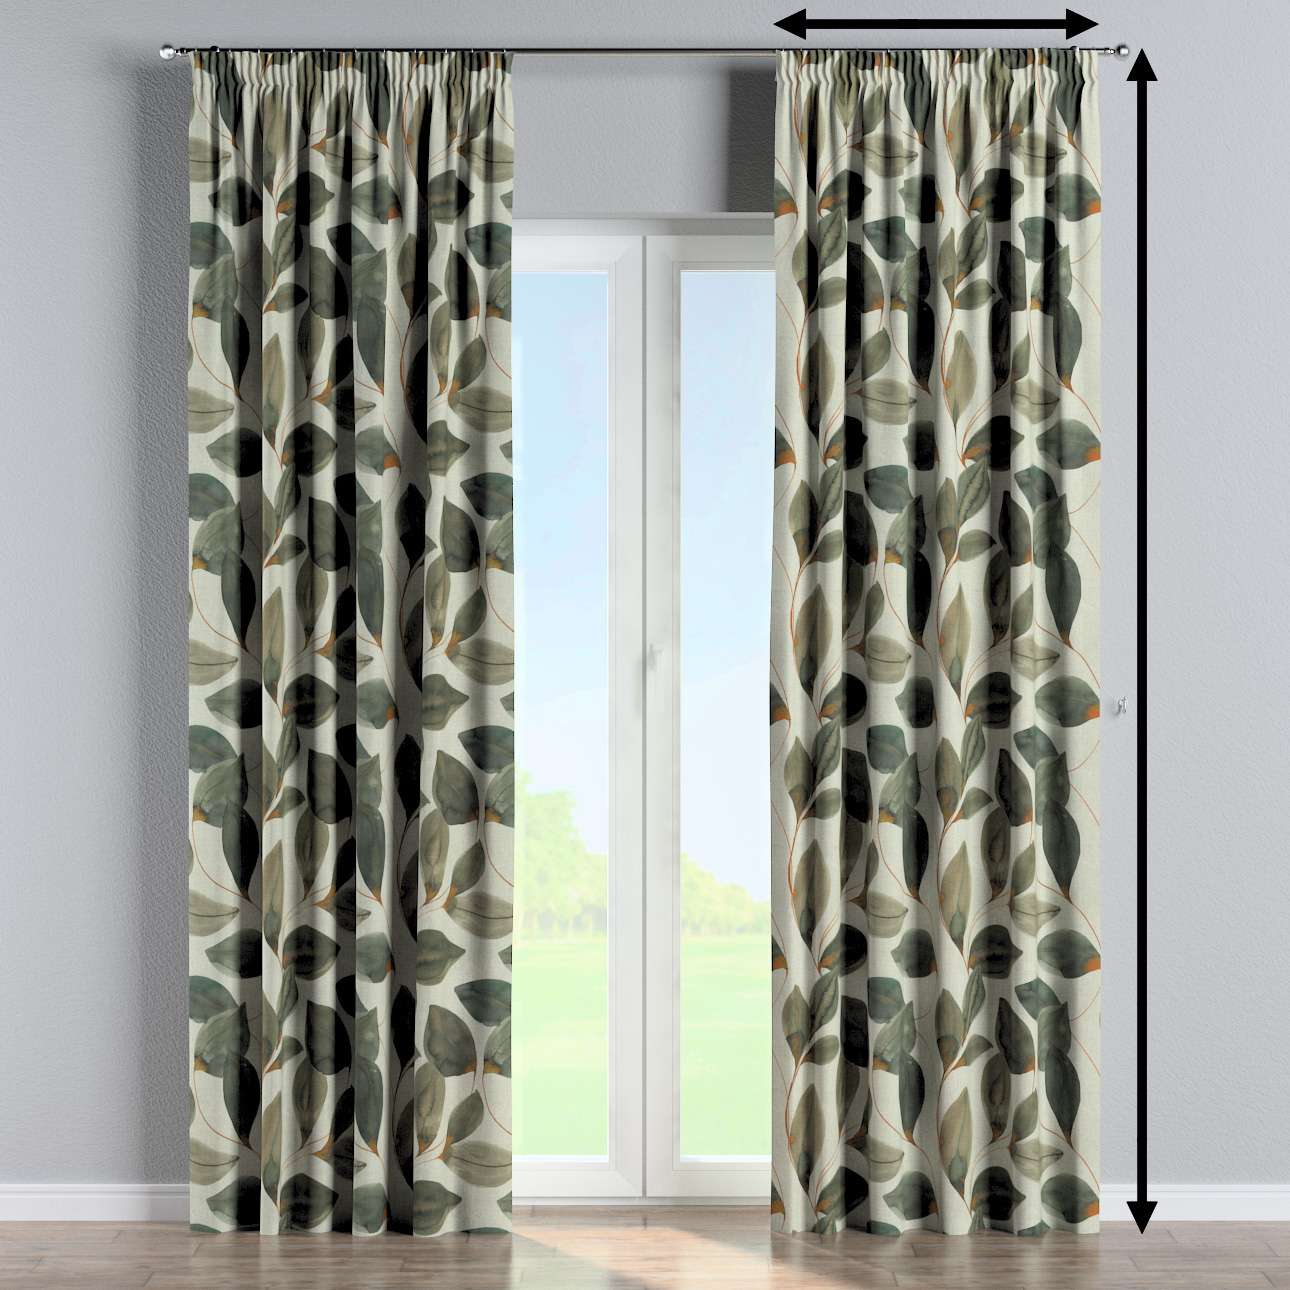 Pencil pleat curtain in collection Abigail, fabric: 143-17